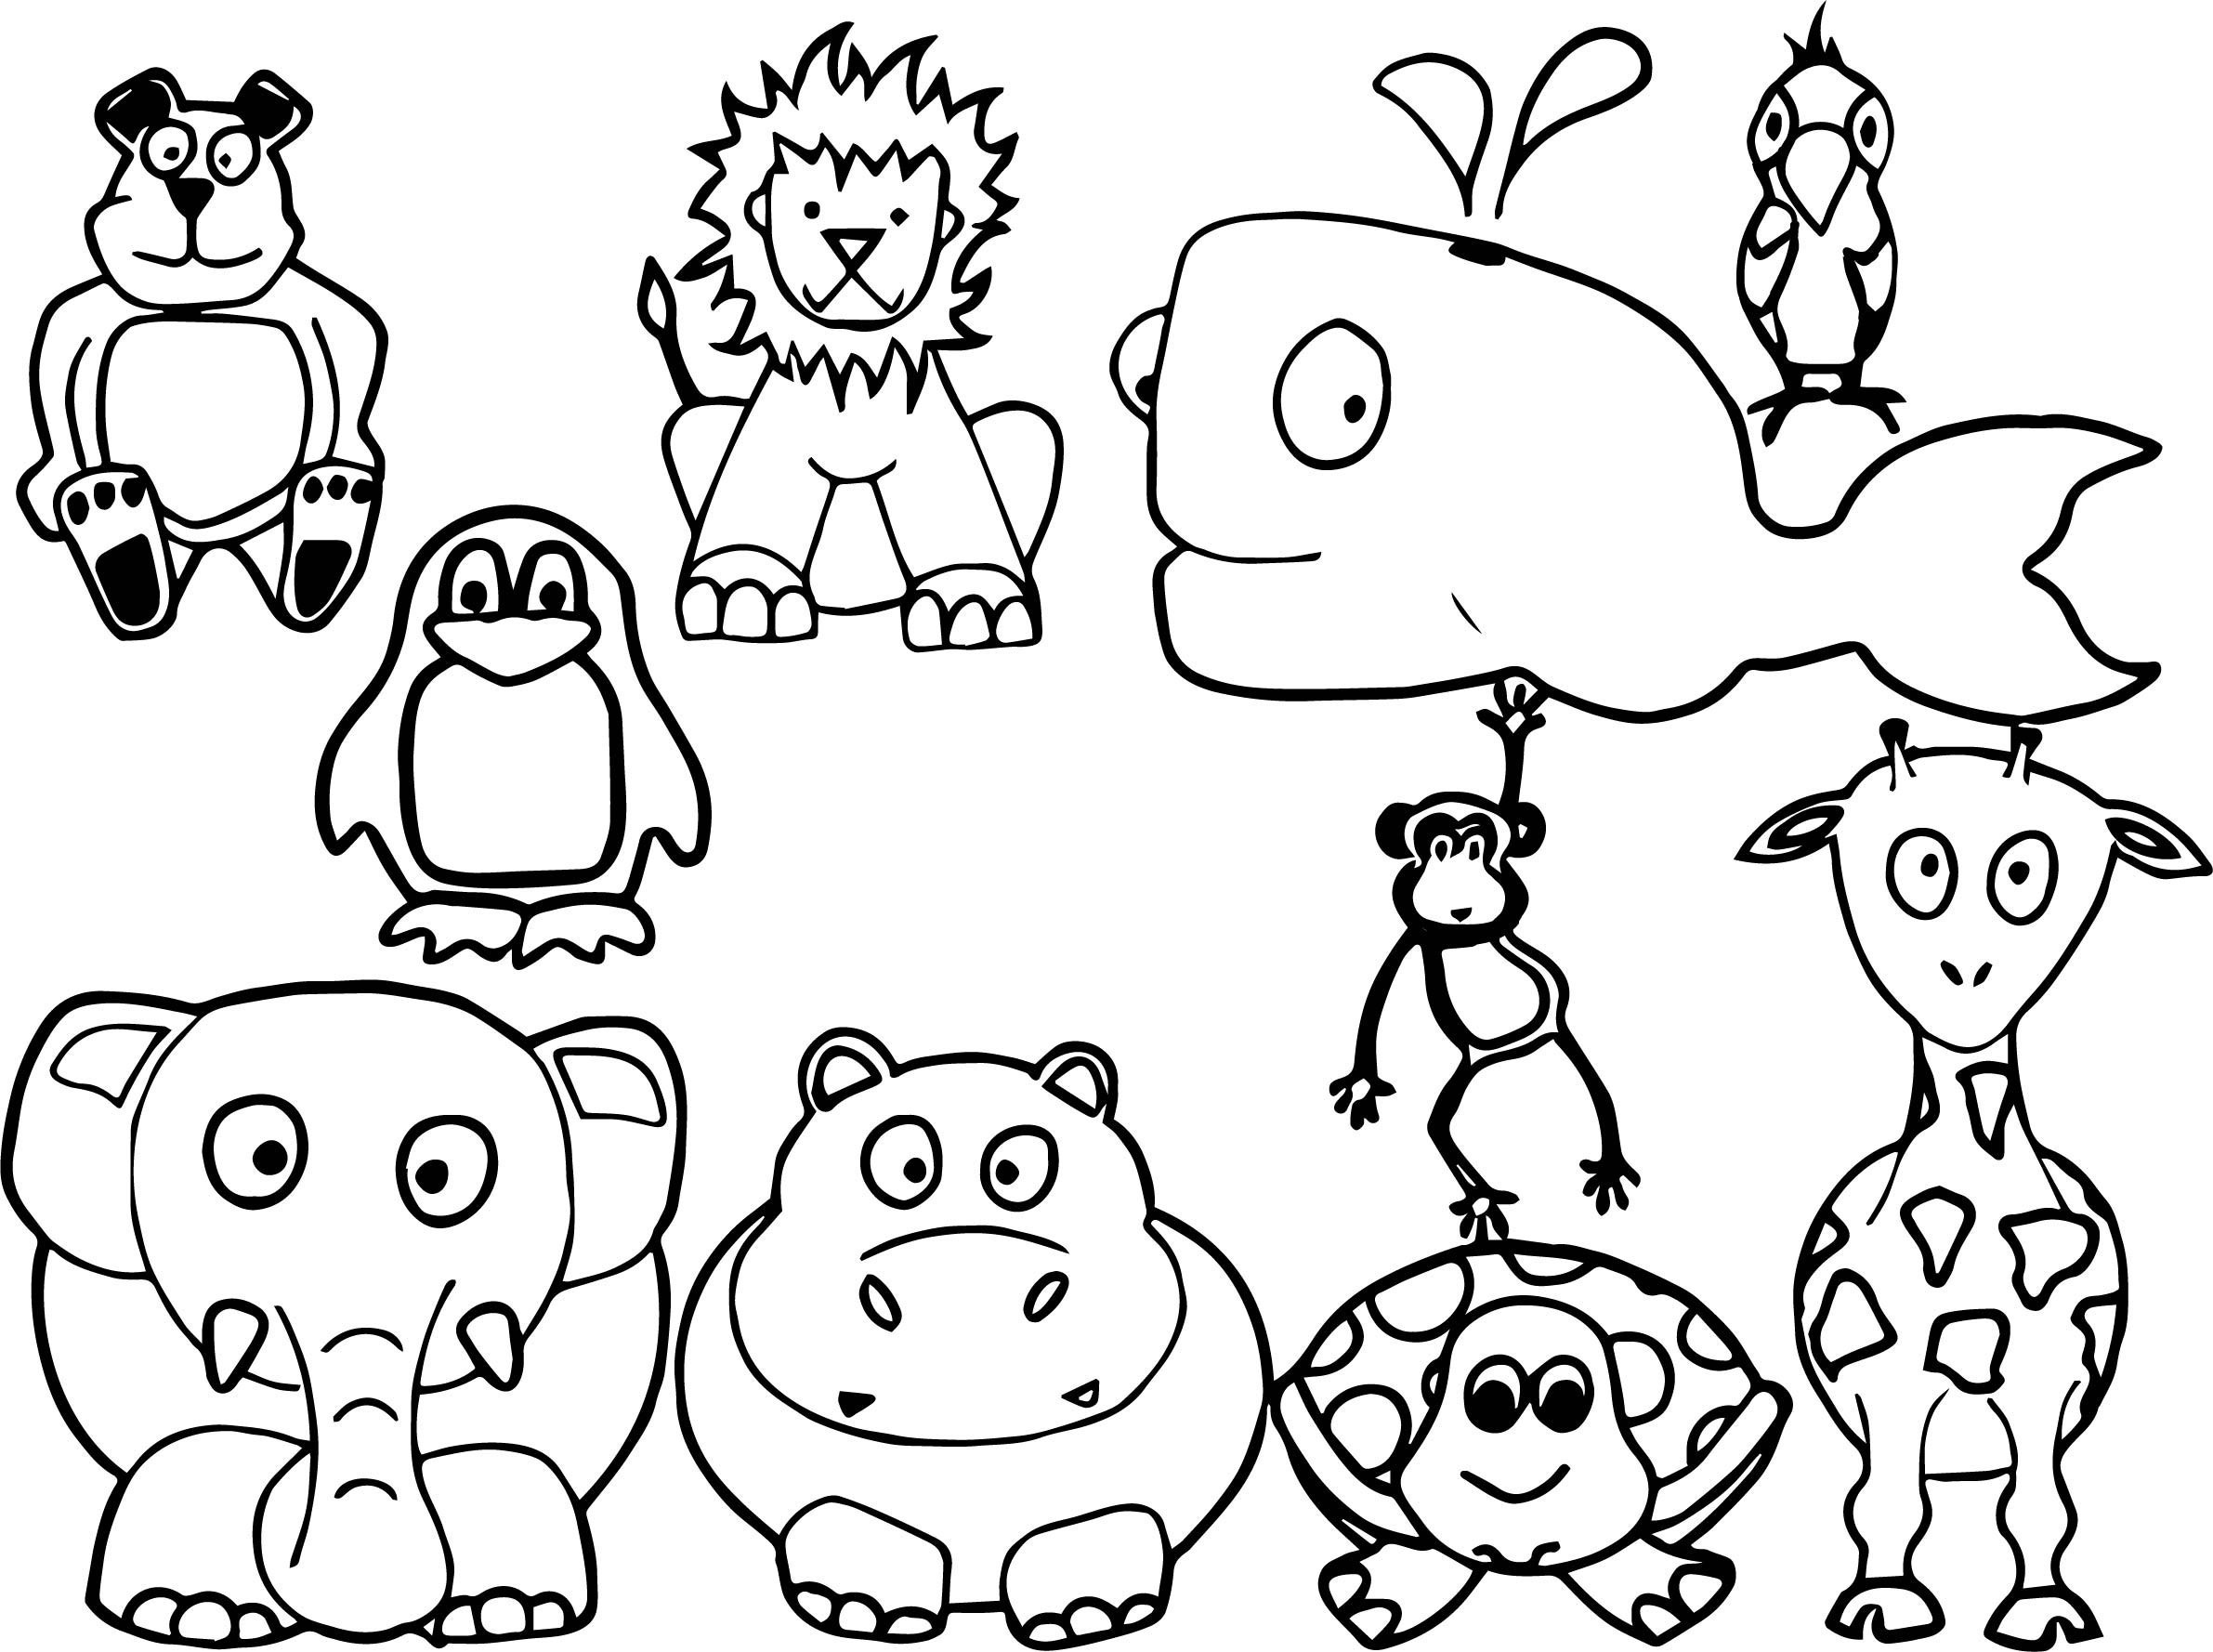 animal pictures coloring pages 25 cute baby animal coloring pages ideas we need fun animal pages pictures coloring